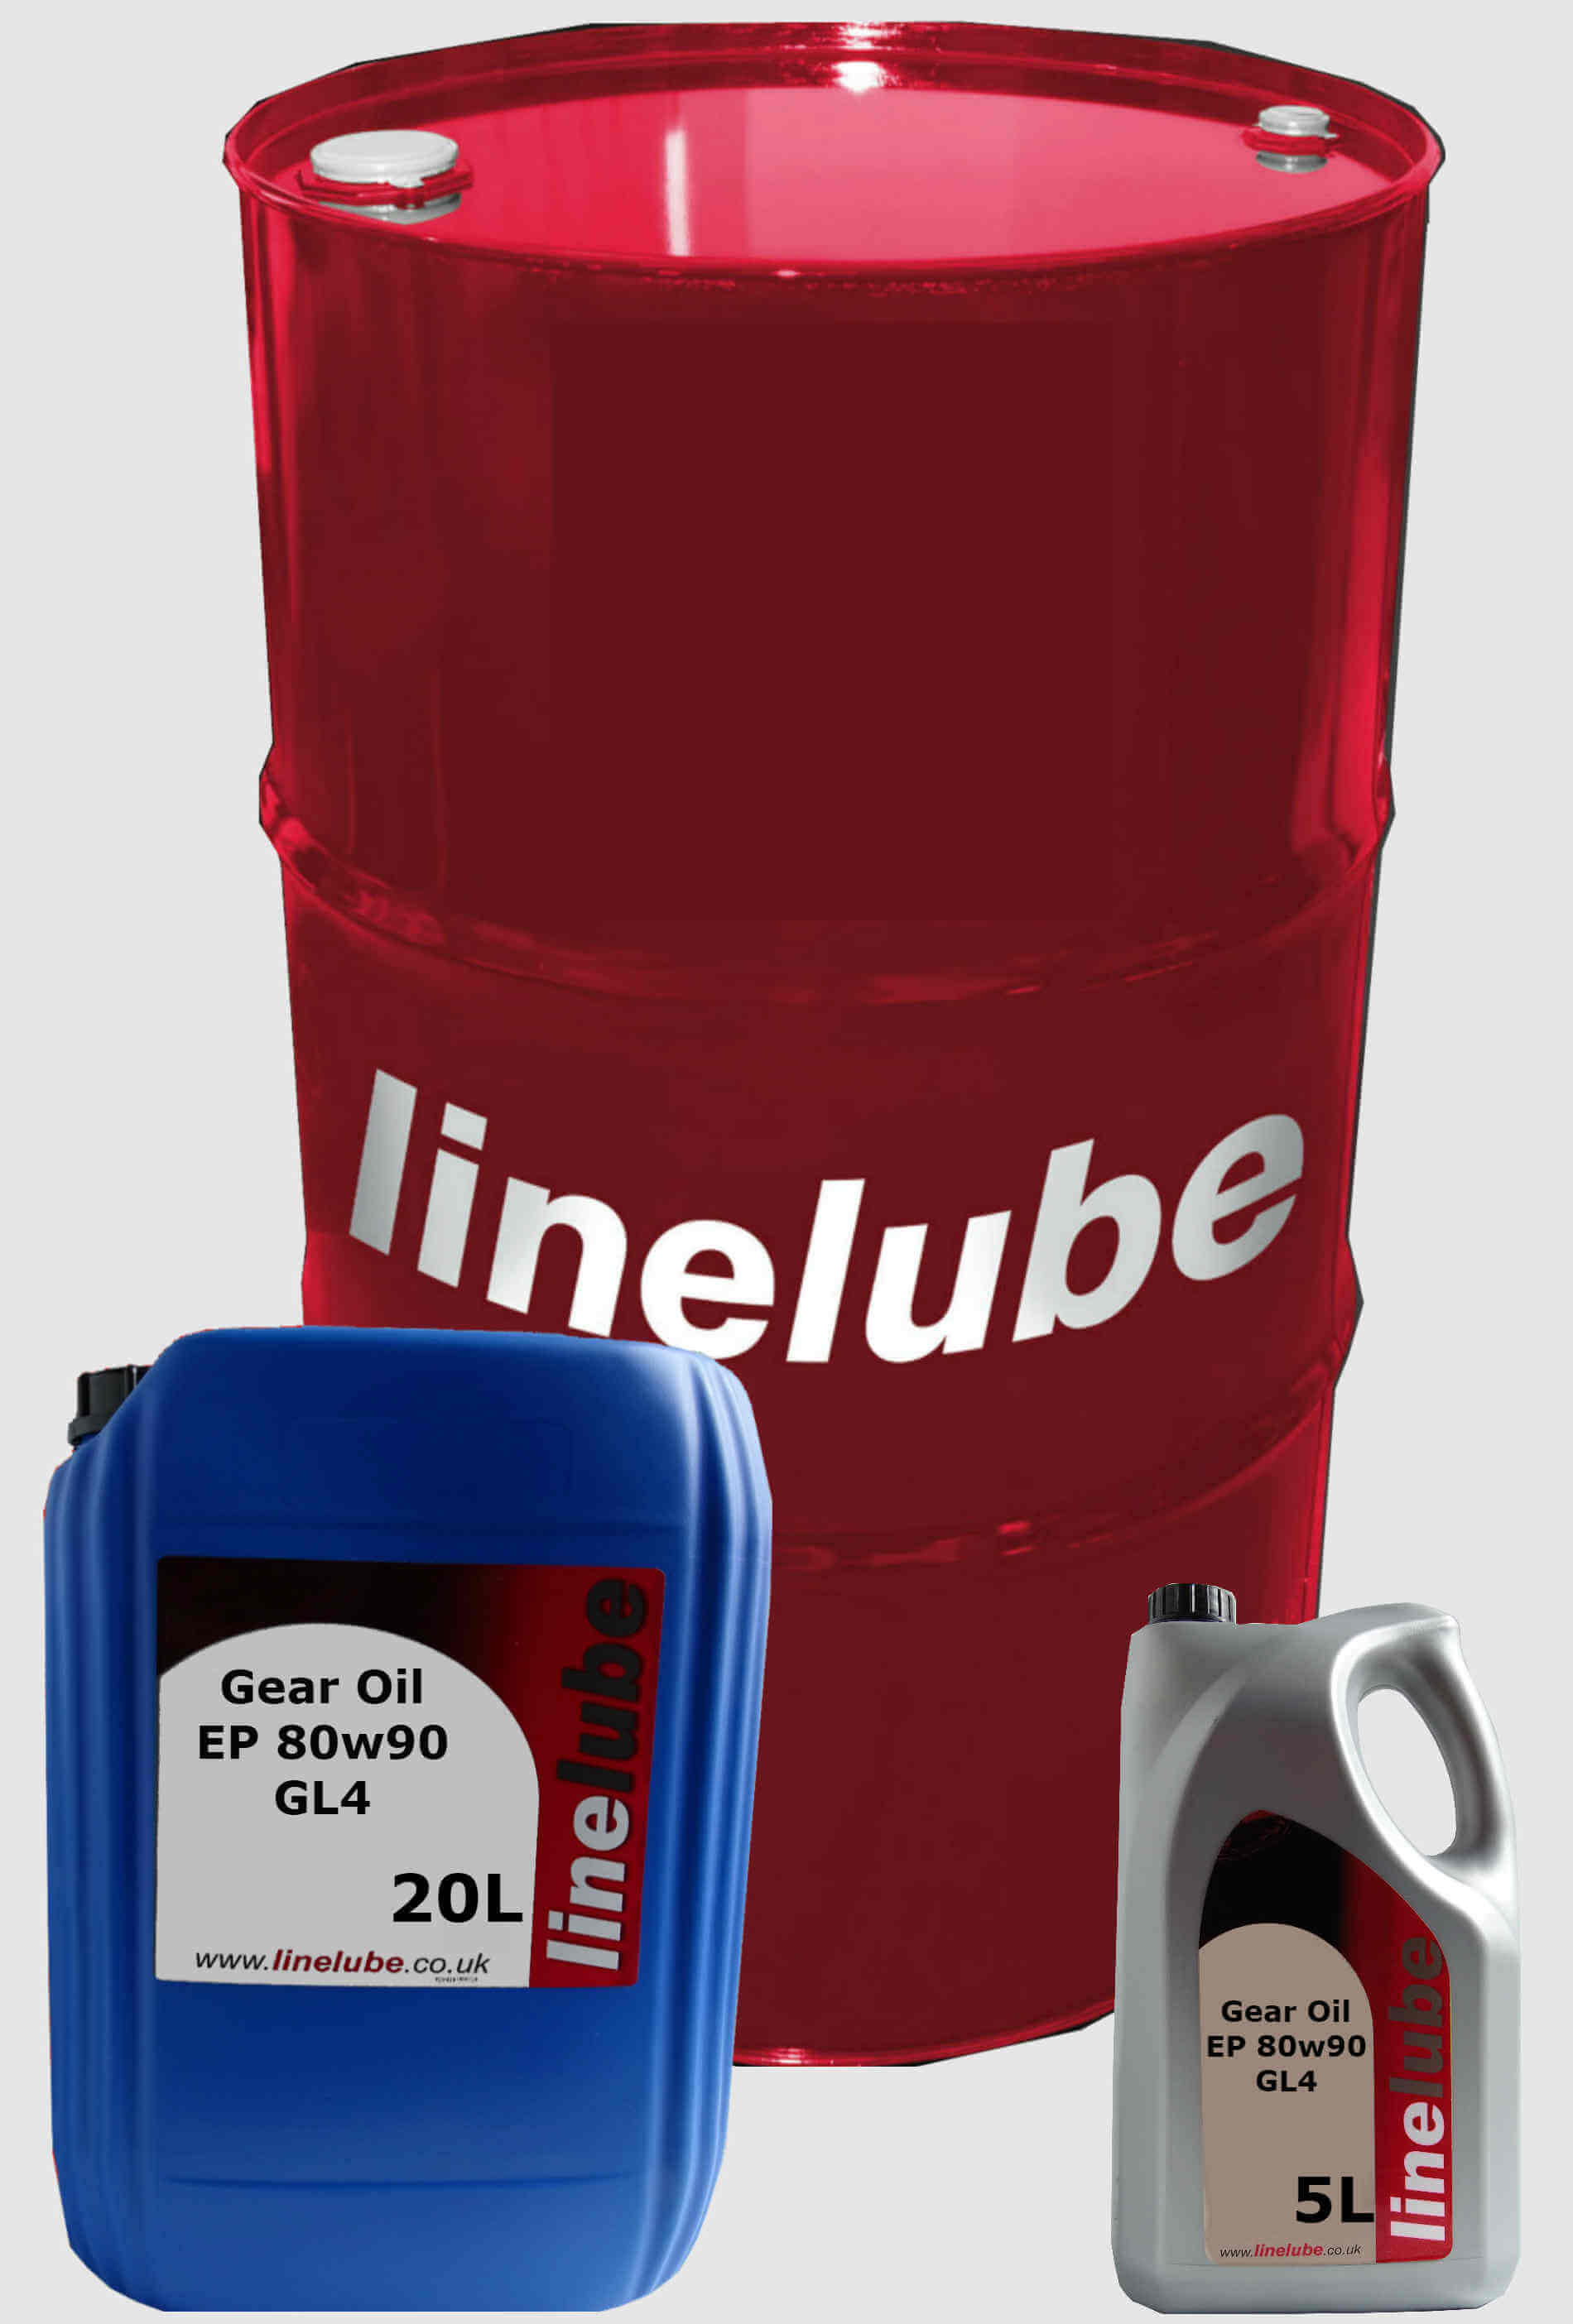 Linelube Gear Oil EP 80W-90 GL4